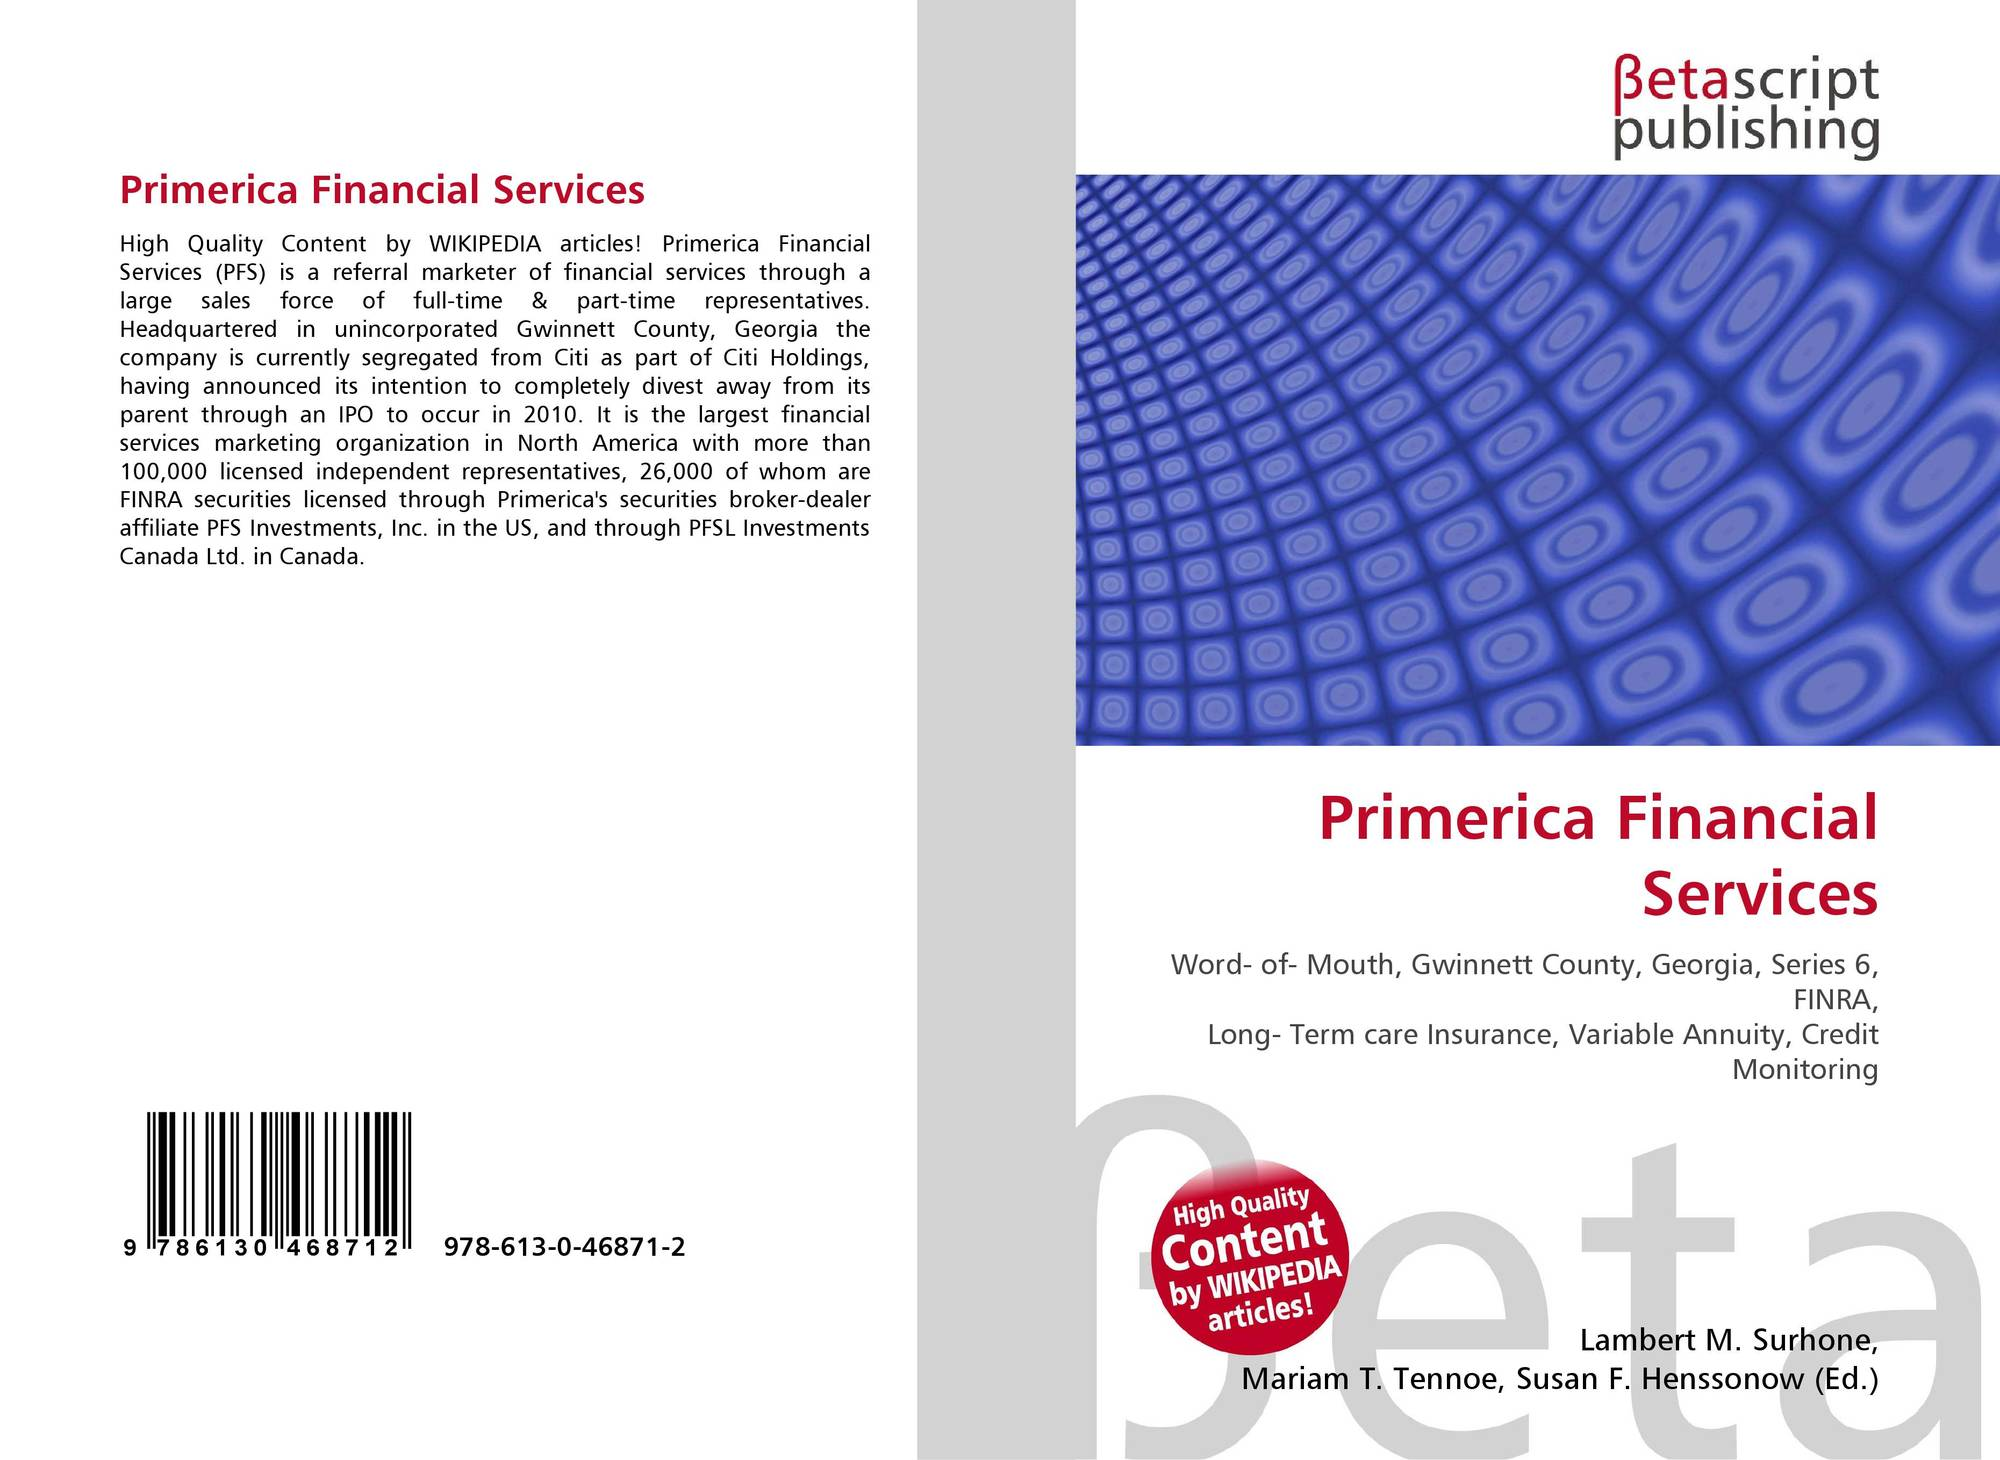 Financial Services: What Is Primerica Financial Services